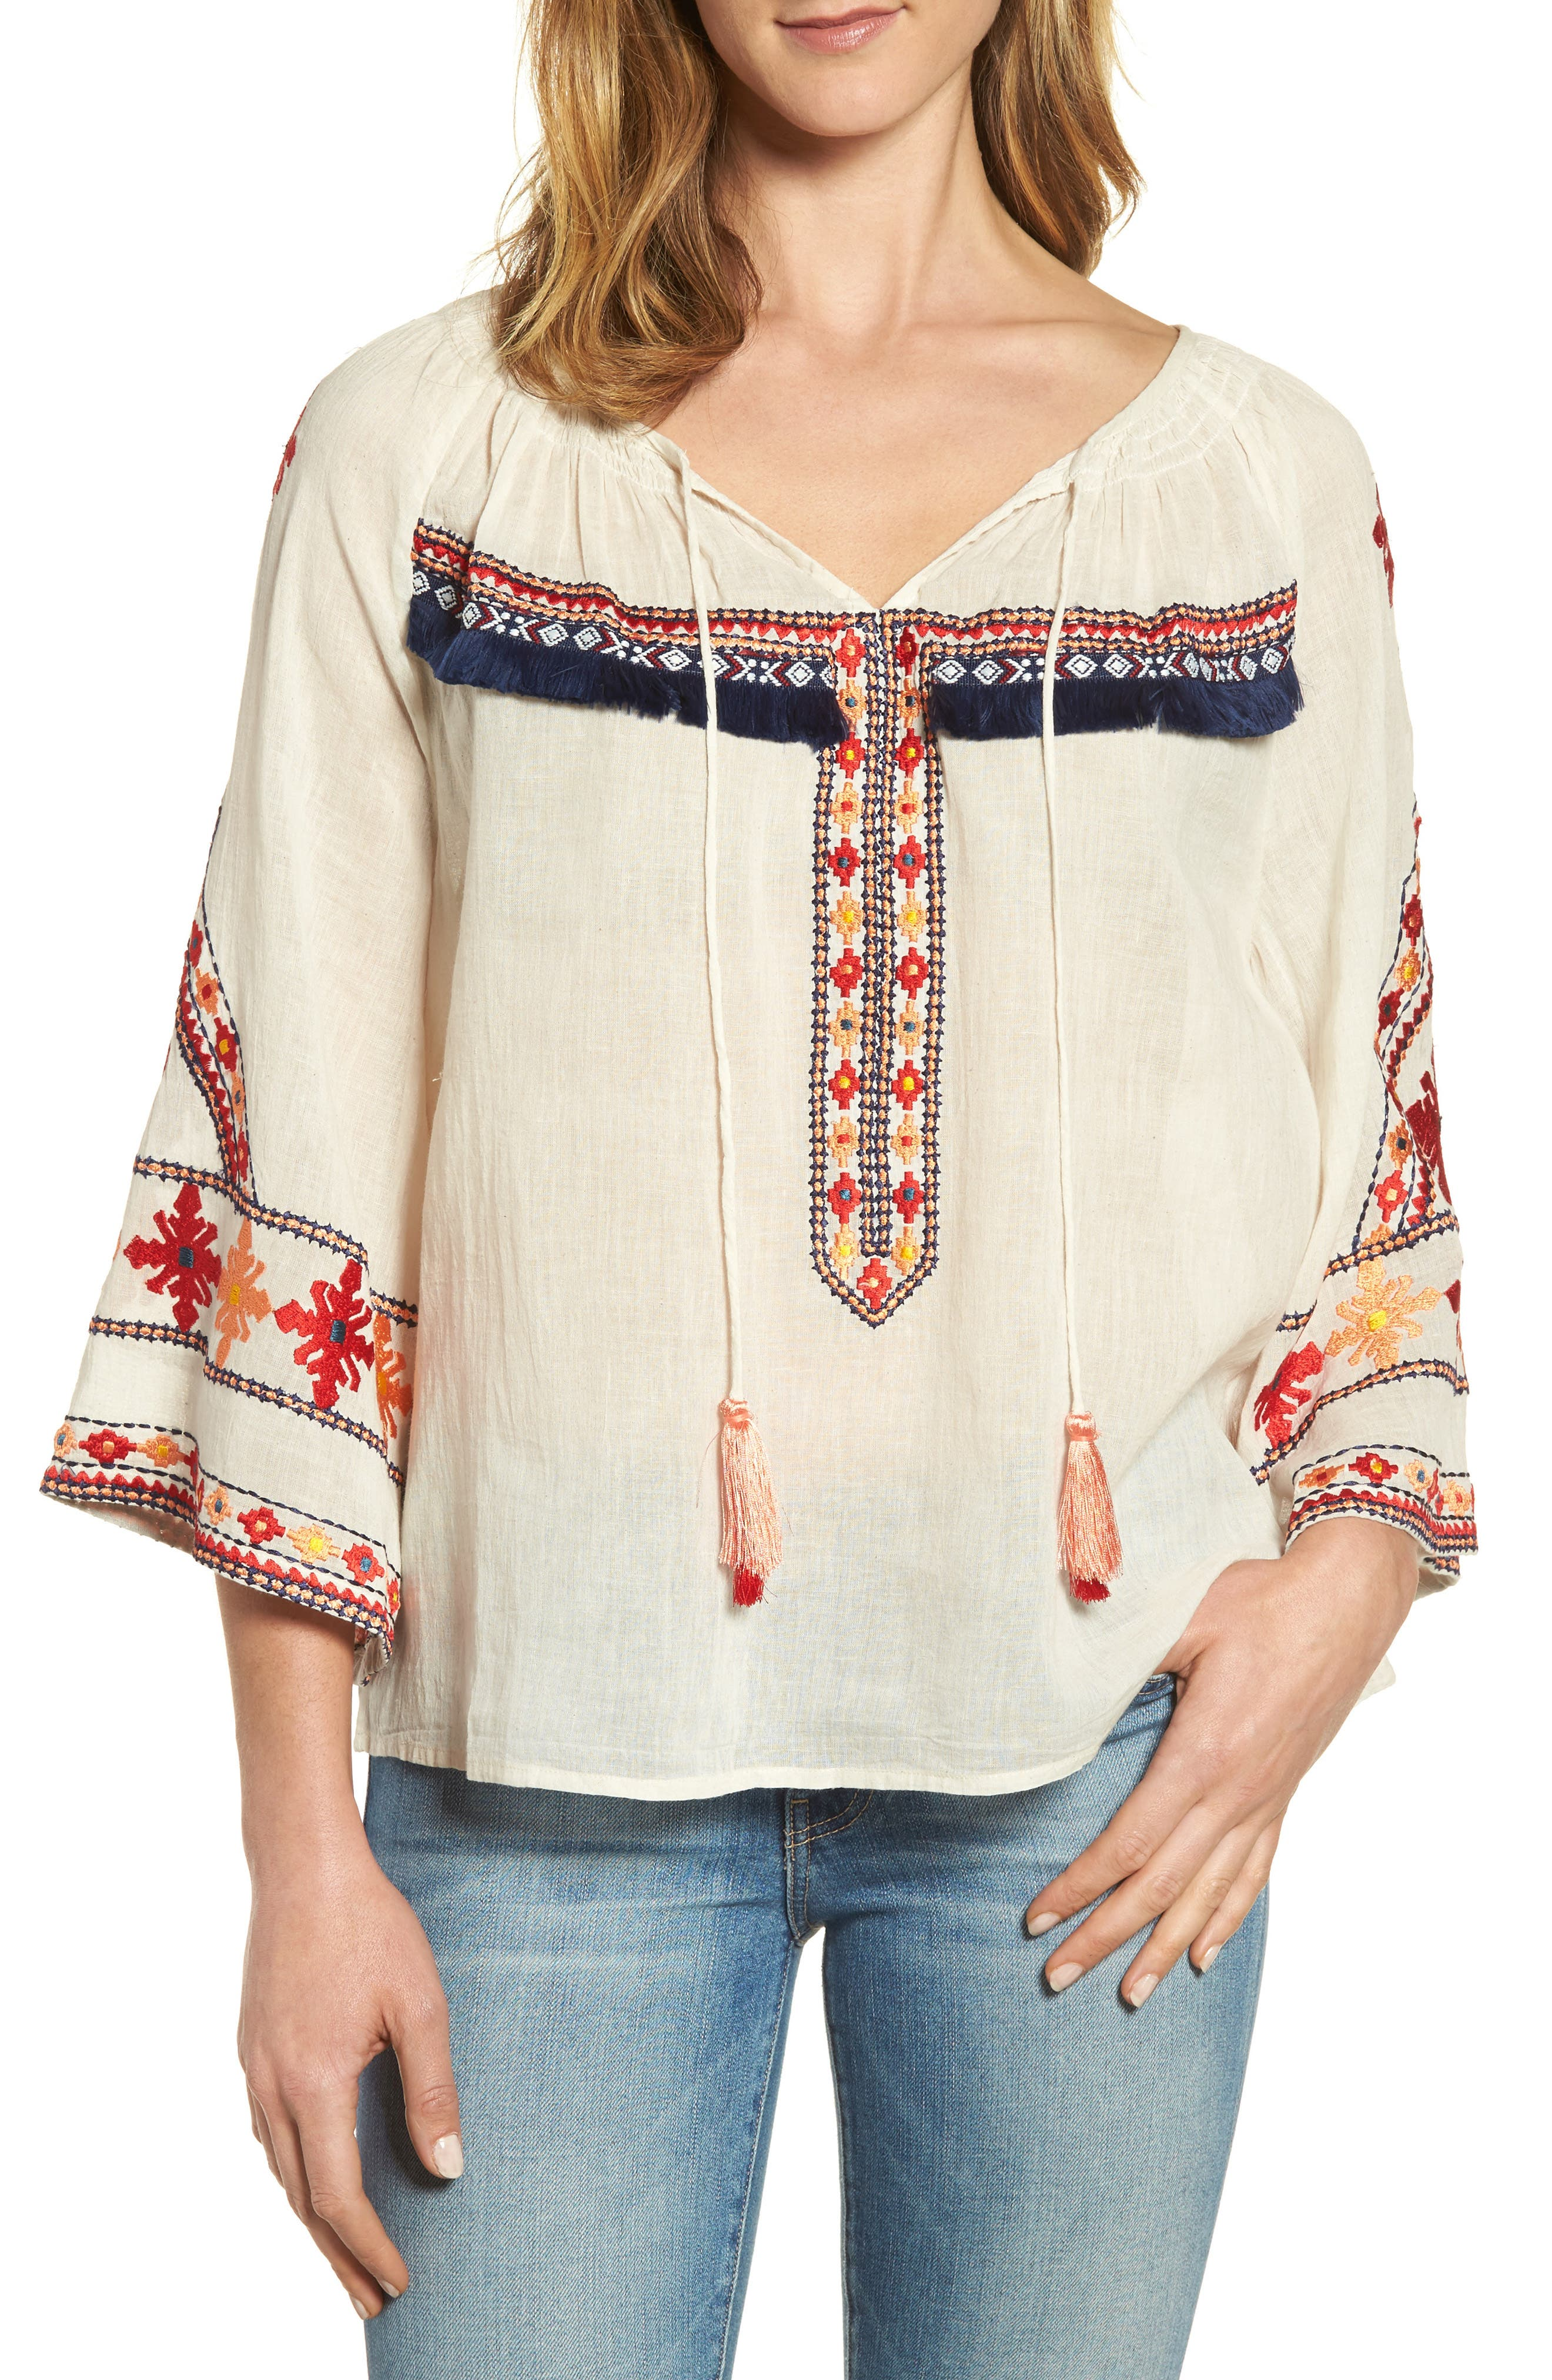 Alternate Image 1 Selected - KAS NEW YORK Juana Embroidered Peasant Top